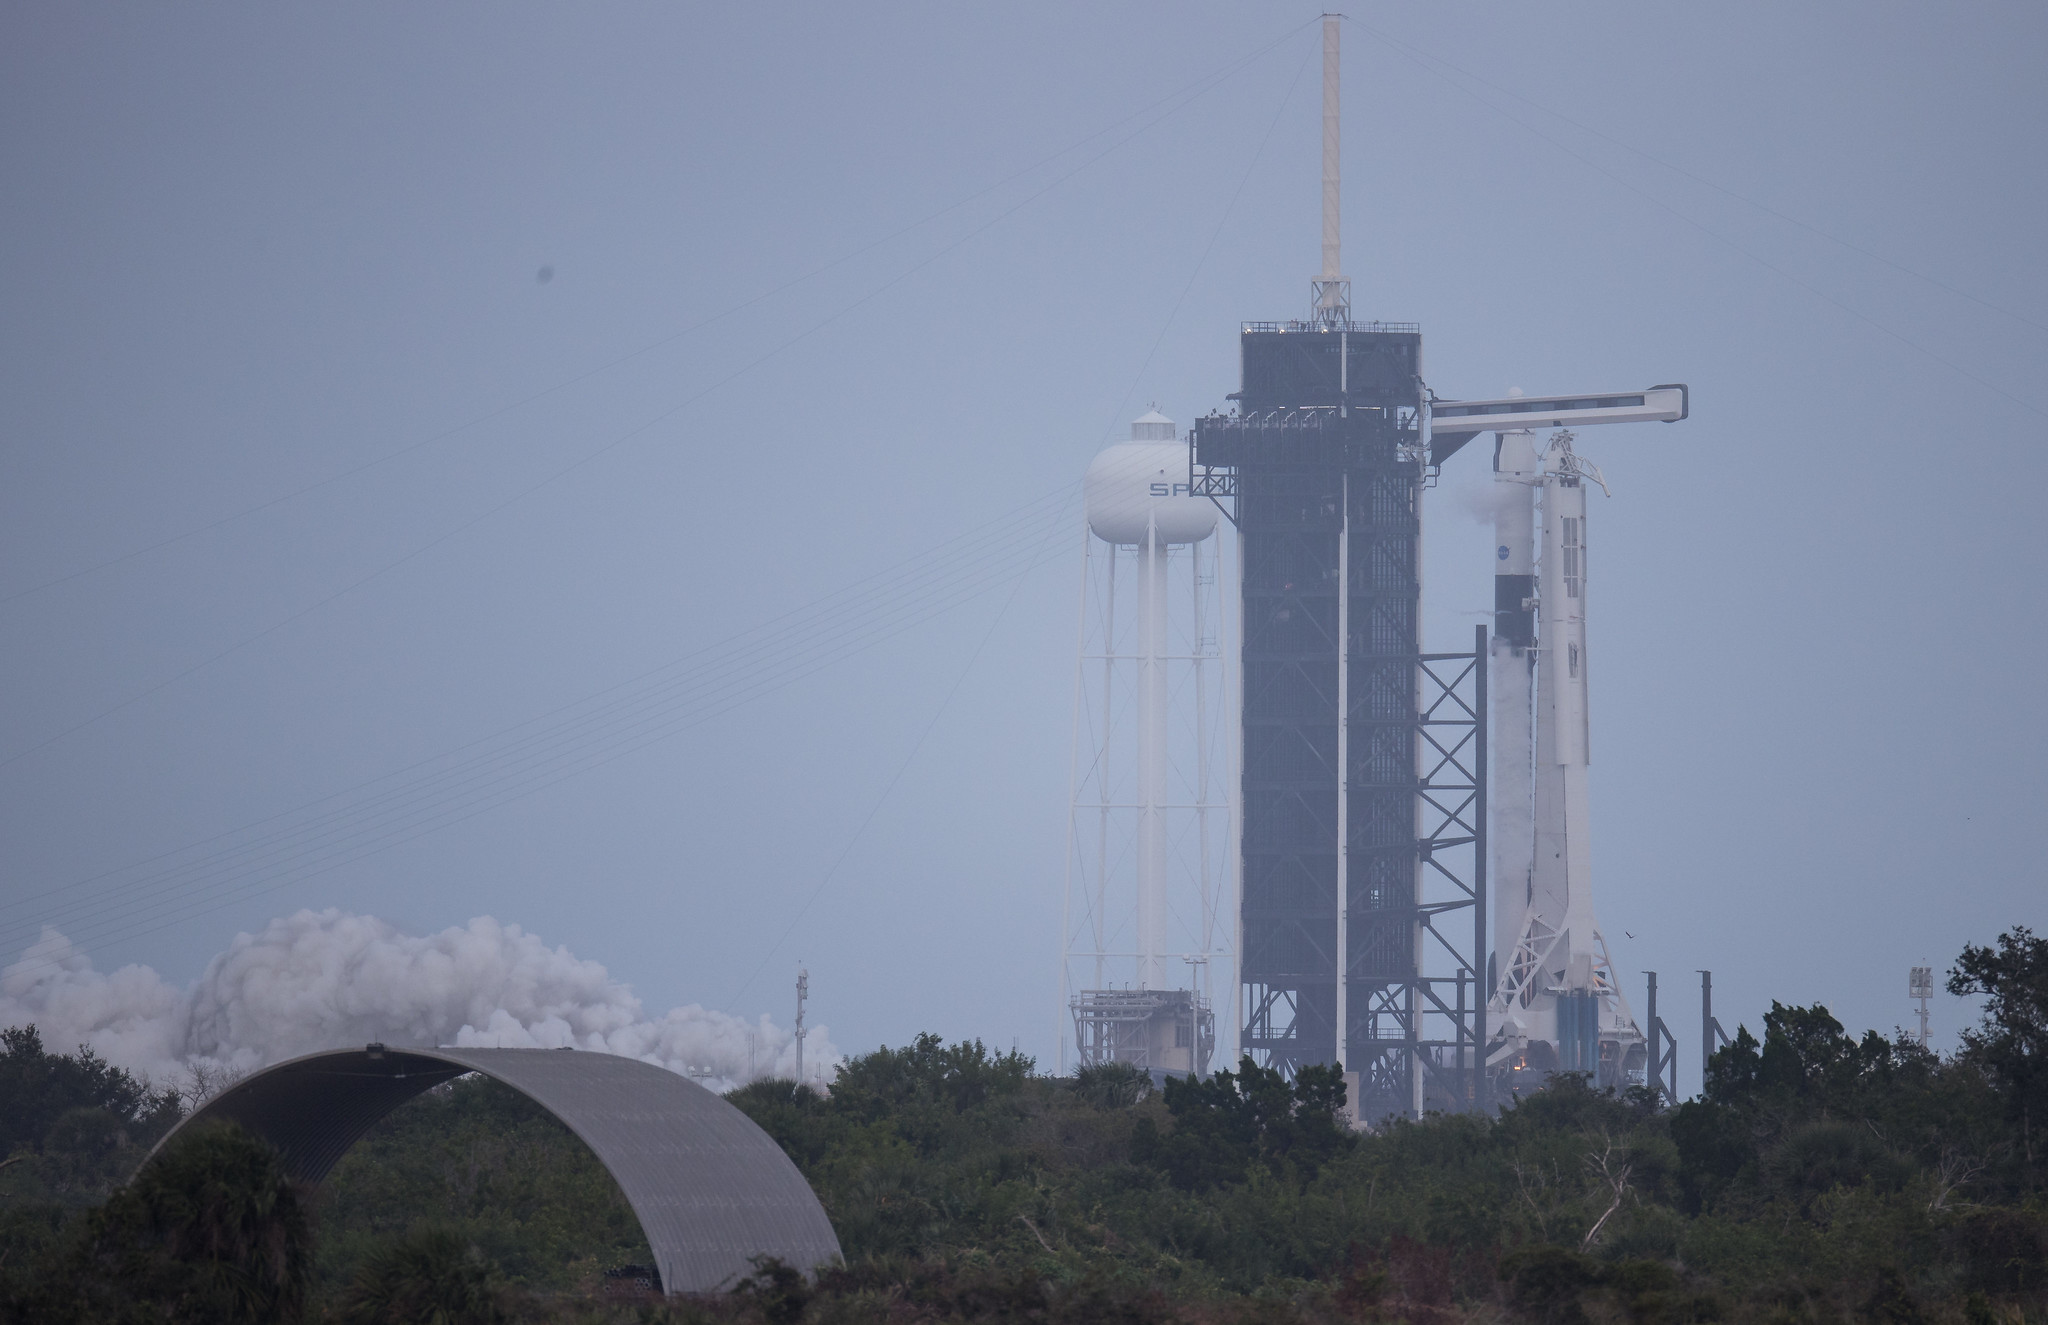 The SpaceX Falcon 9 first-stage engine test rocket launched briefly over Pad 39A at NASA's Kennedy Space Center in Cape Canaveral, Florida on November 11, 2020. The rocket will launch NASA's Crew-1 Astronaut Mission on November 14.